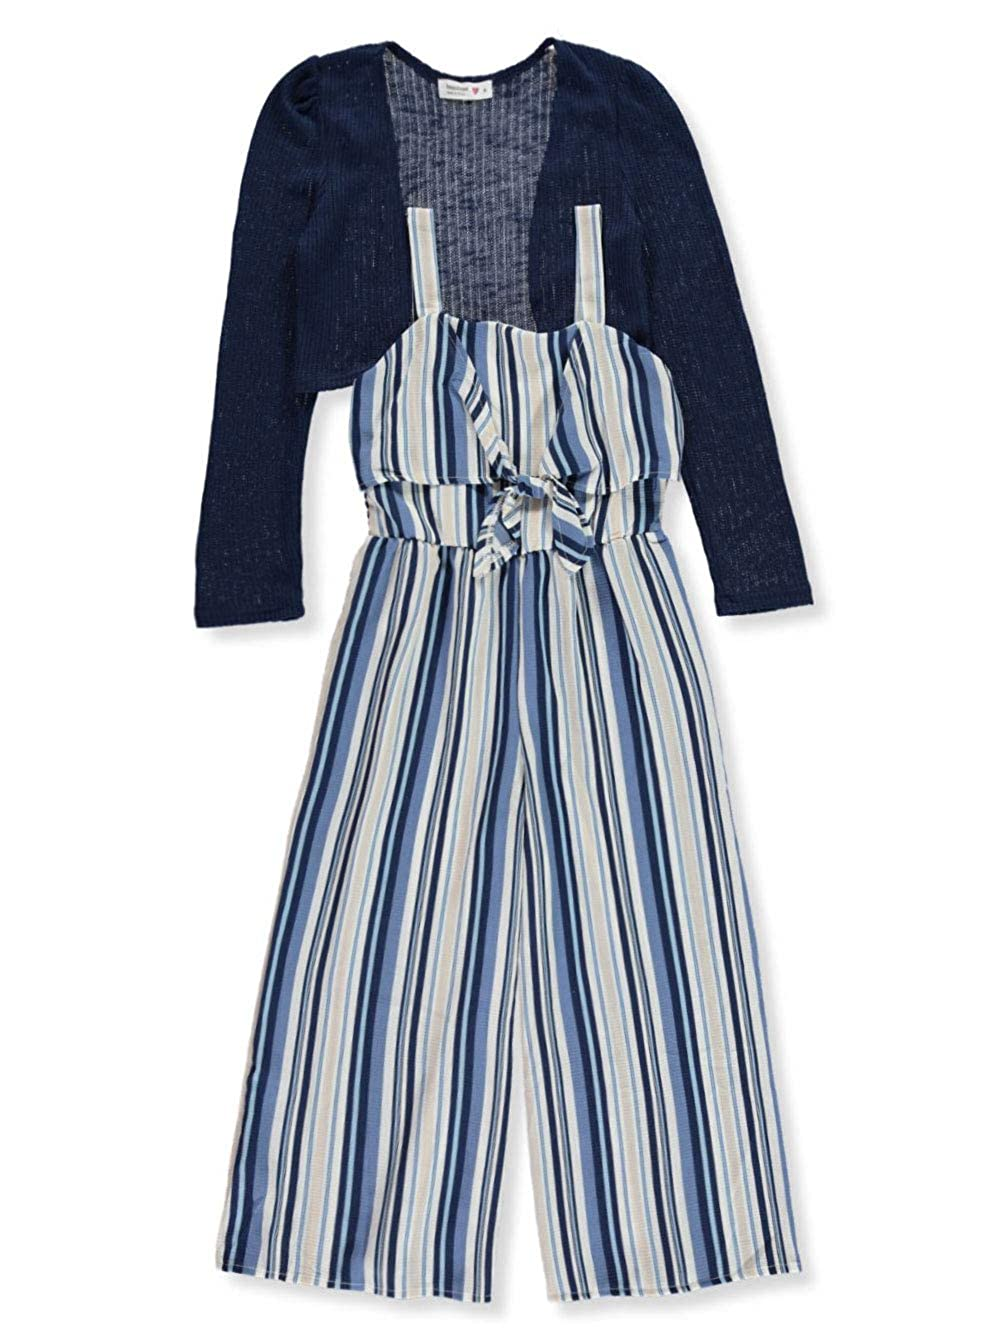 Beautees Girls Striped Jumpsuit with Cardigan Shrug